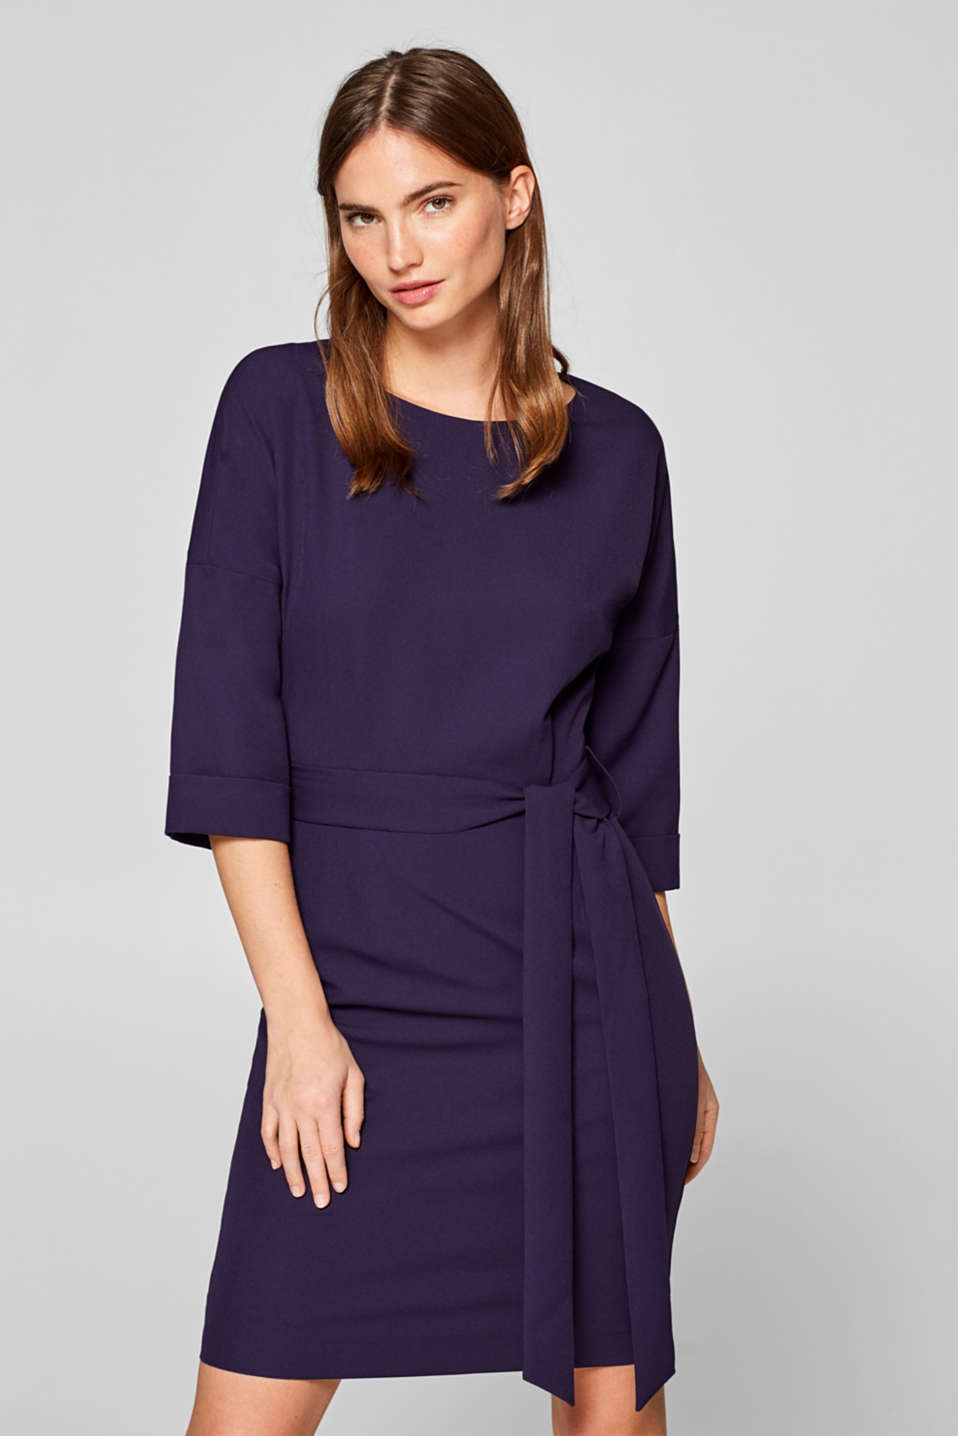 Esprit - Modern sheath dress with batwing sleeves